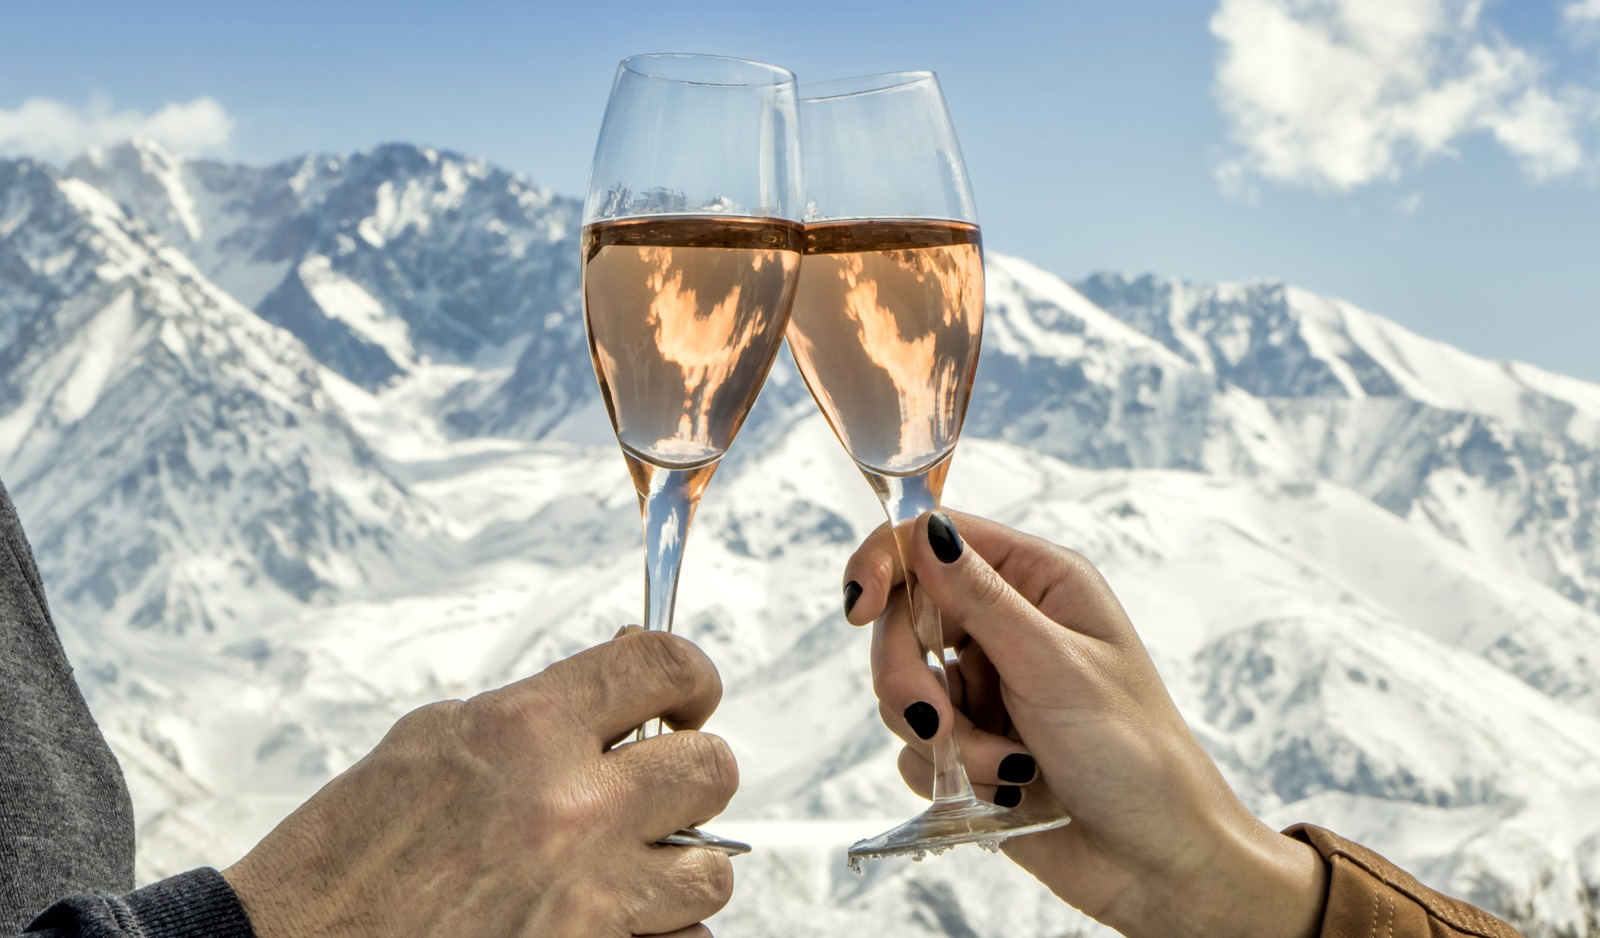 best apres ski spots in the Alps, best apres ski in Europe, apres ski france, apres ski switzerland, apres ski italy, apres ski